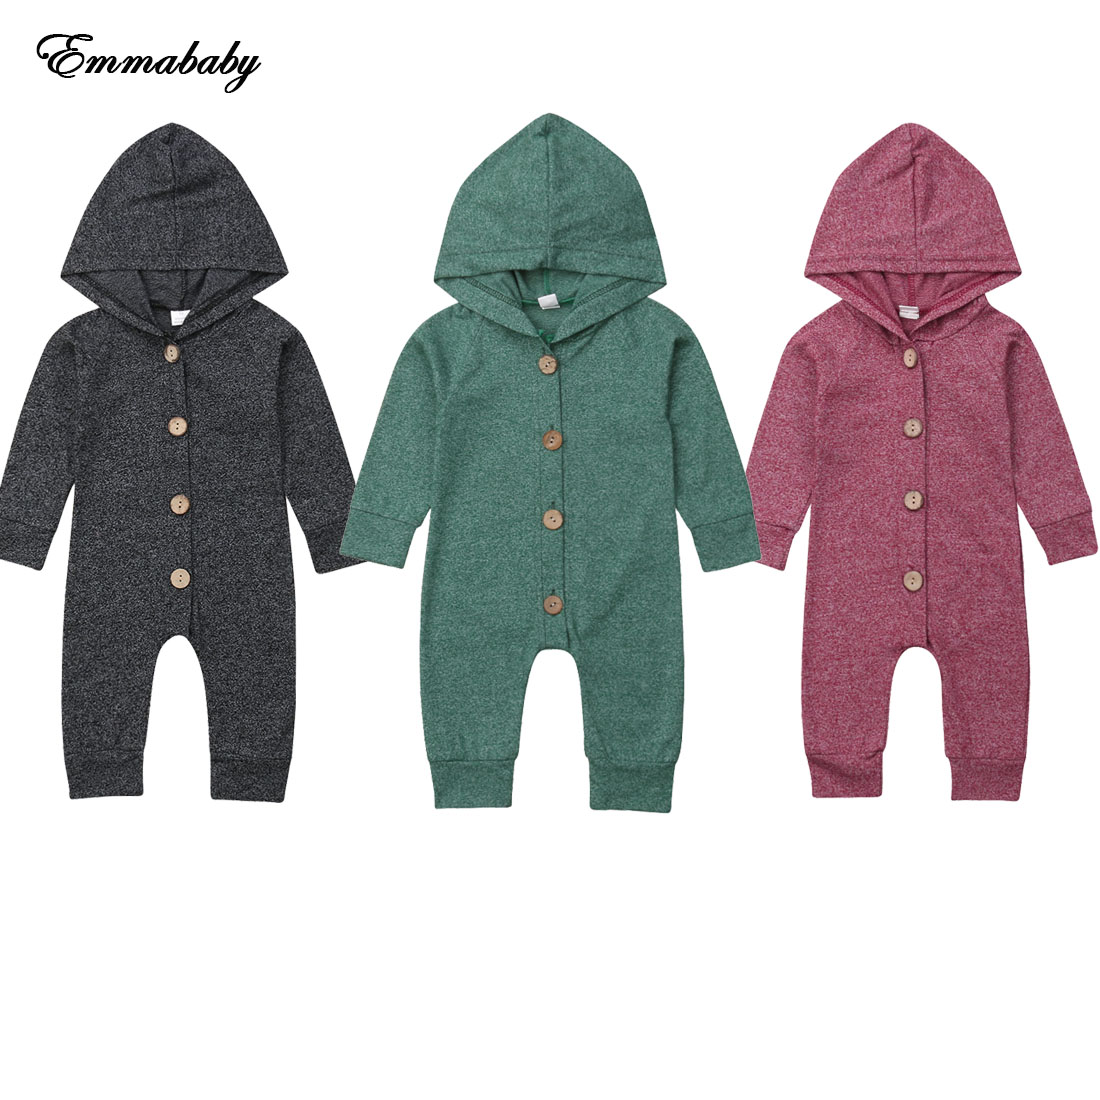 NEW 2020 Infant Baby Boy Girl Hooded Romper Kid Outerwear Outfit Jumpsuit For Children Clothes Kid Clothing 0-24M